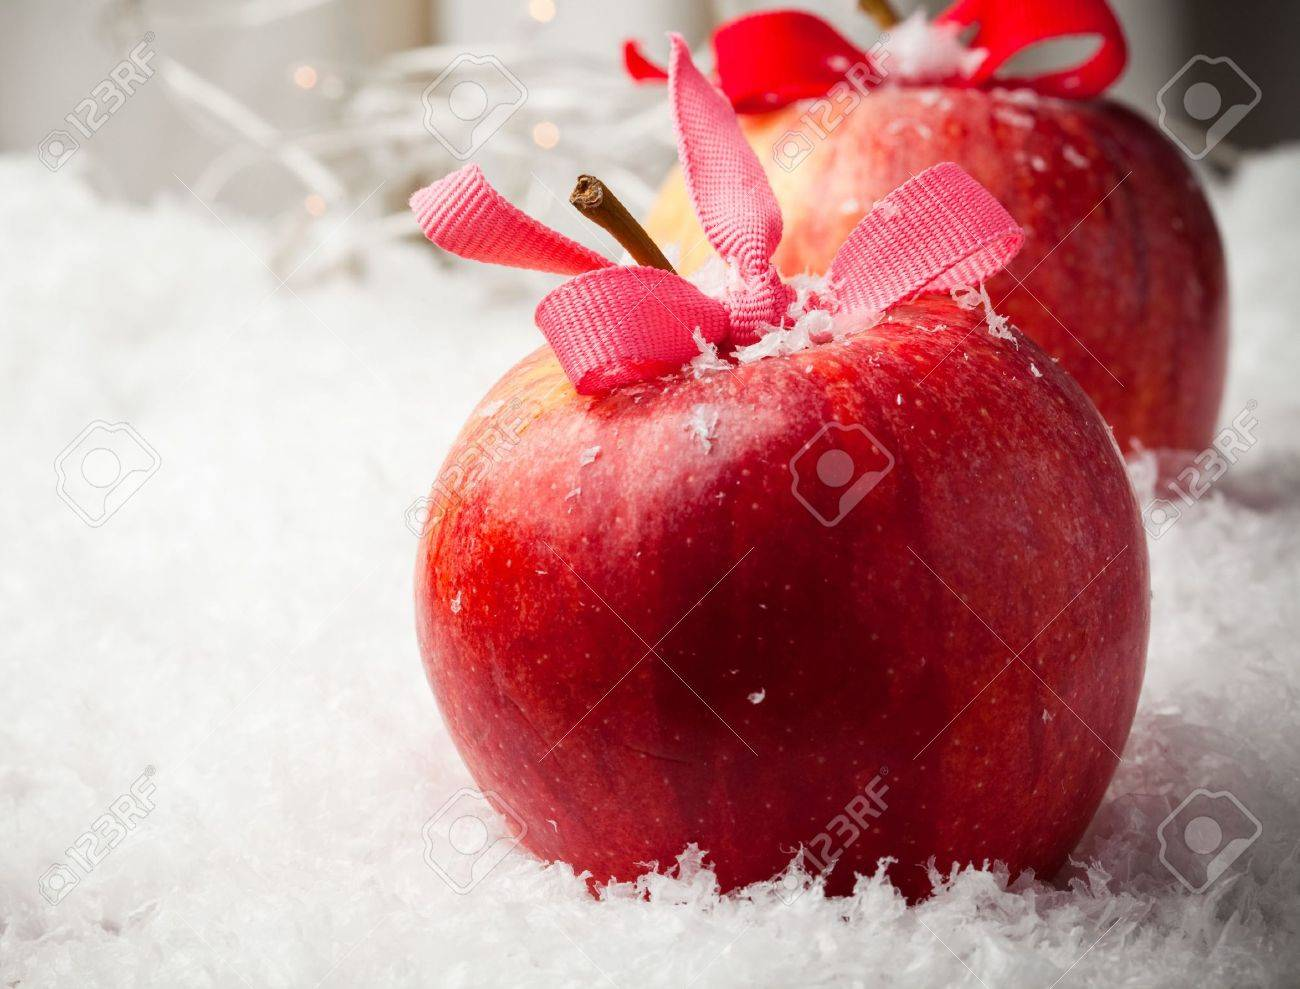 Red delicious Christmas apples resting in snow - 7947501